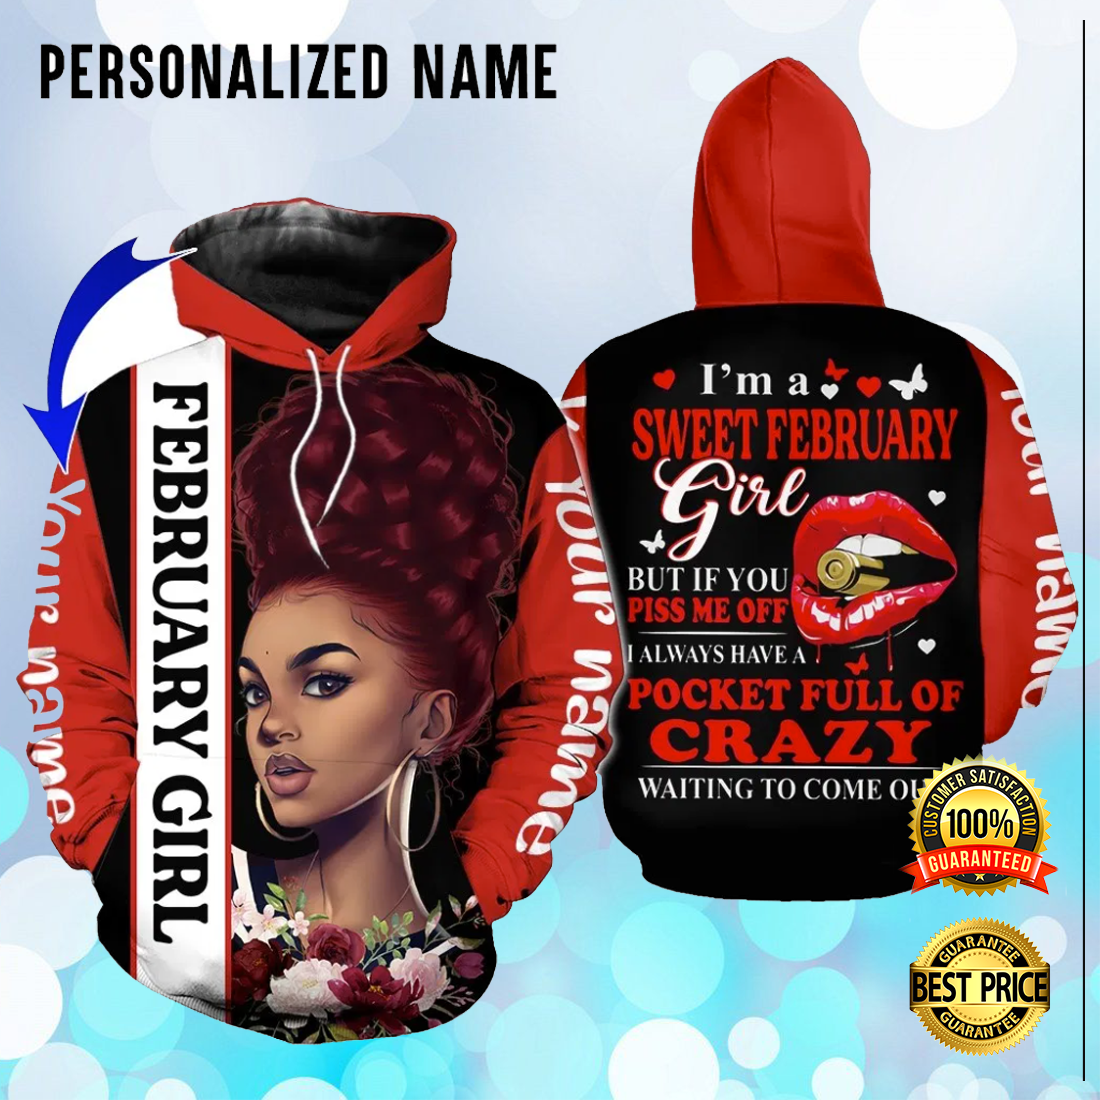 PERSONALIZED I'M A SWEET FEBRUARY GIRL ALL OVER PRINTED 3D HOODIE 6